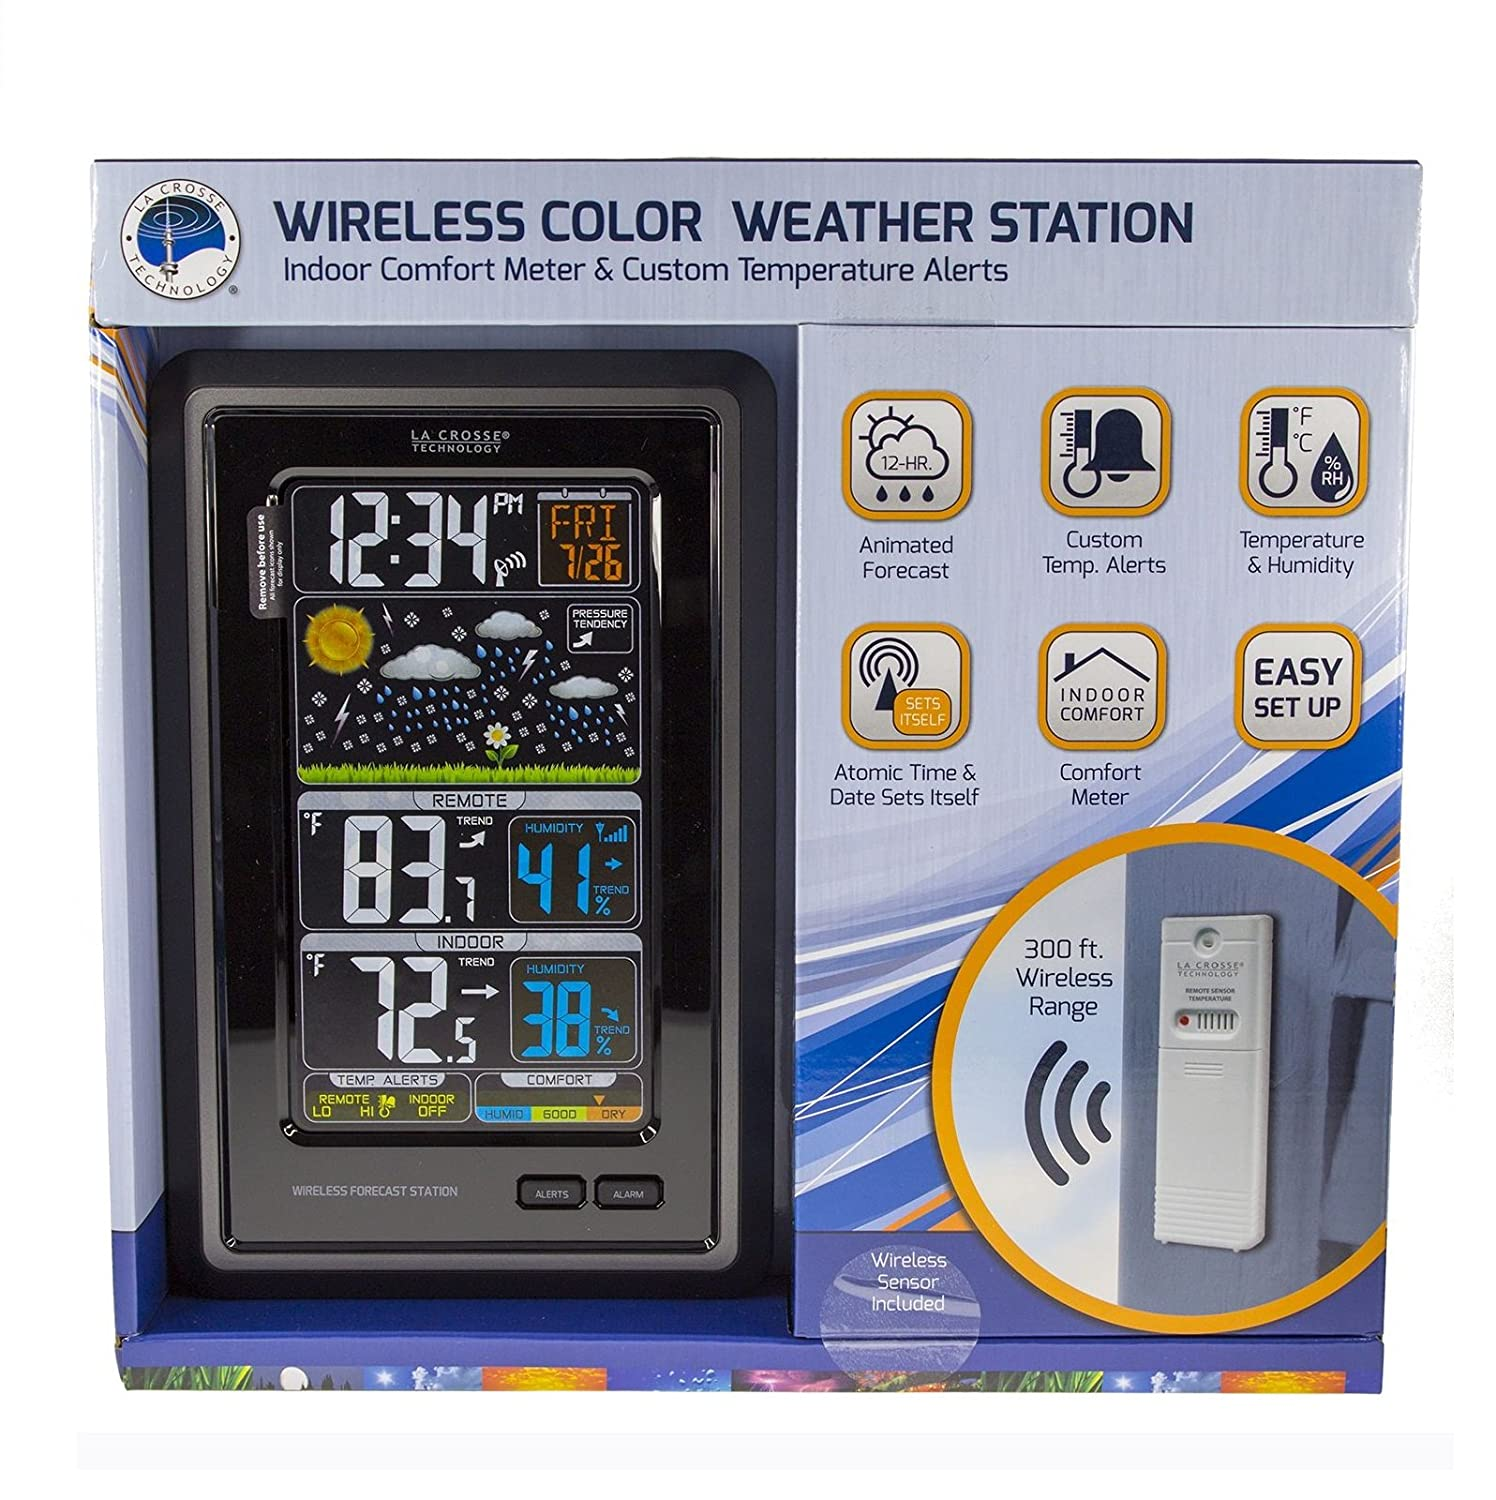 La Crosse Wireless Color Weather Station New Free Shipping